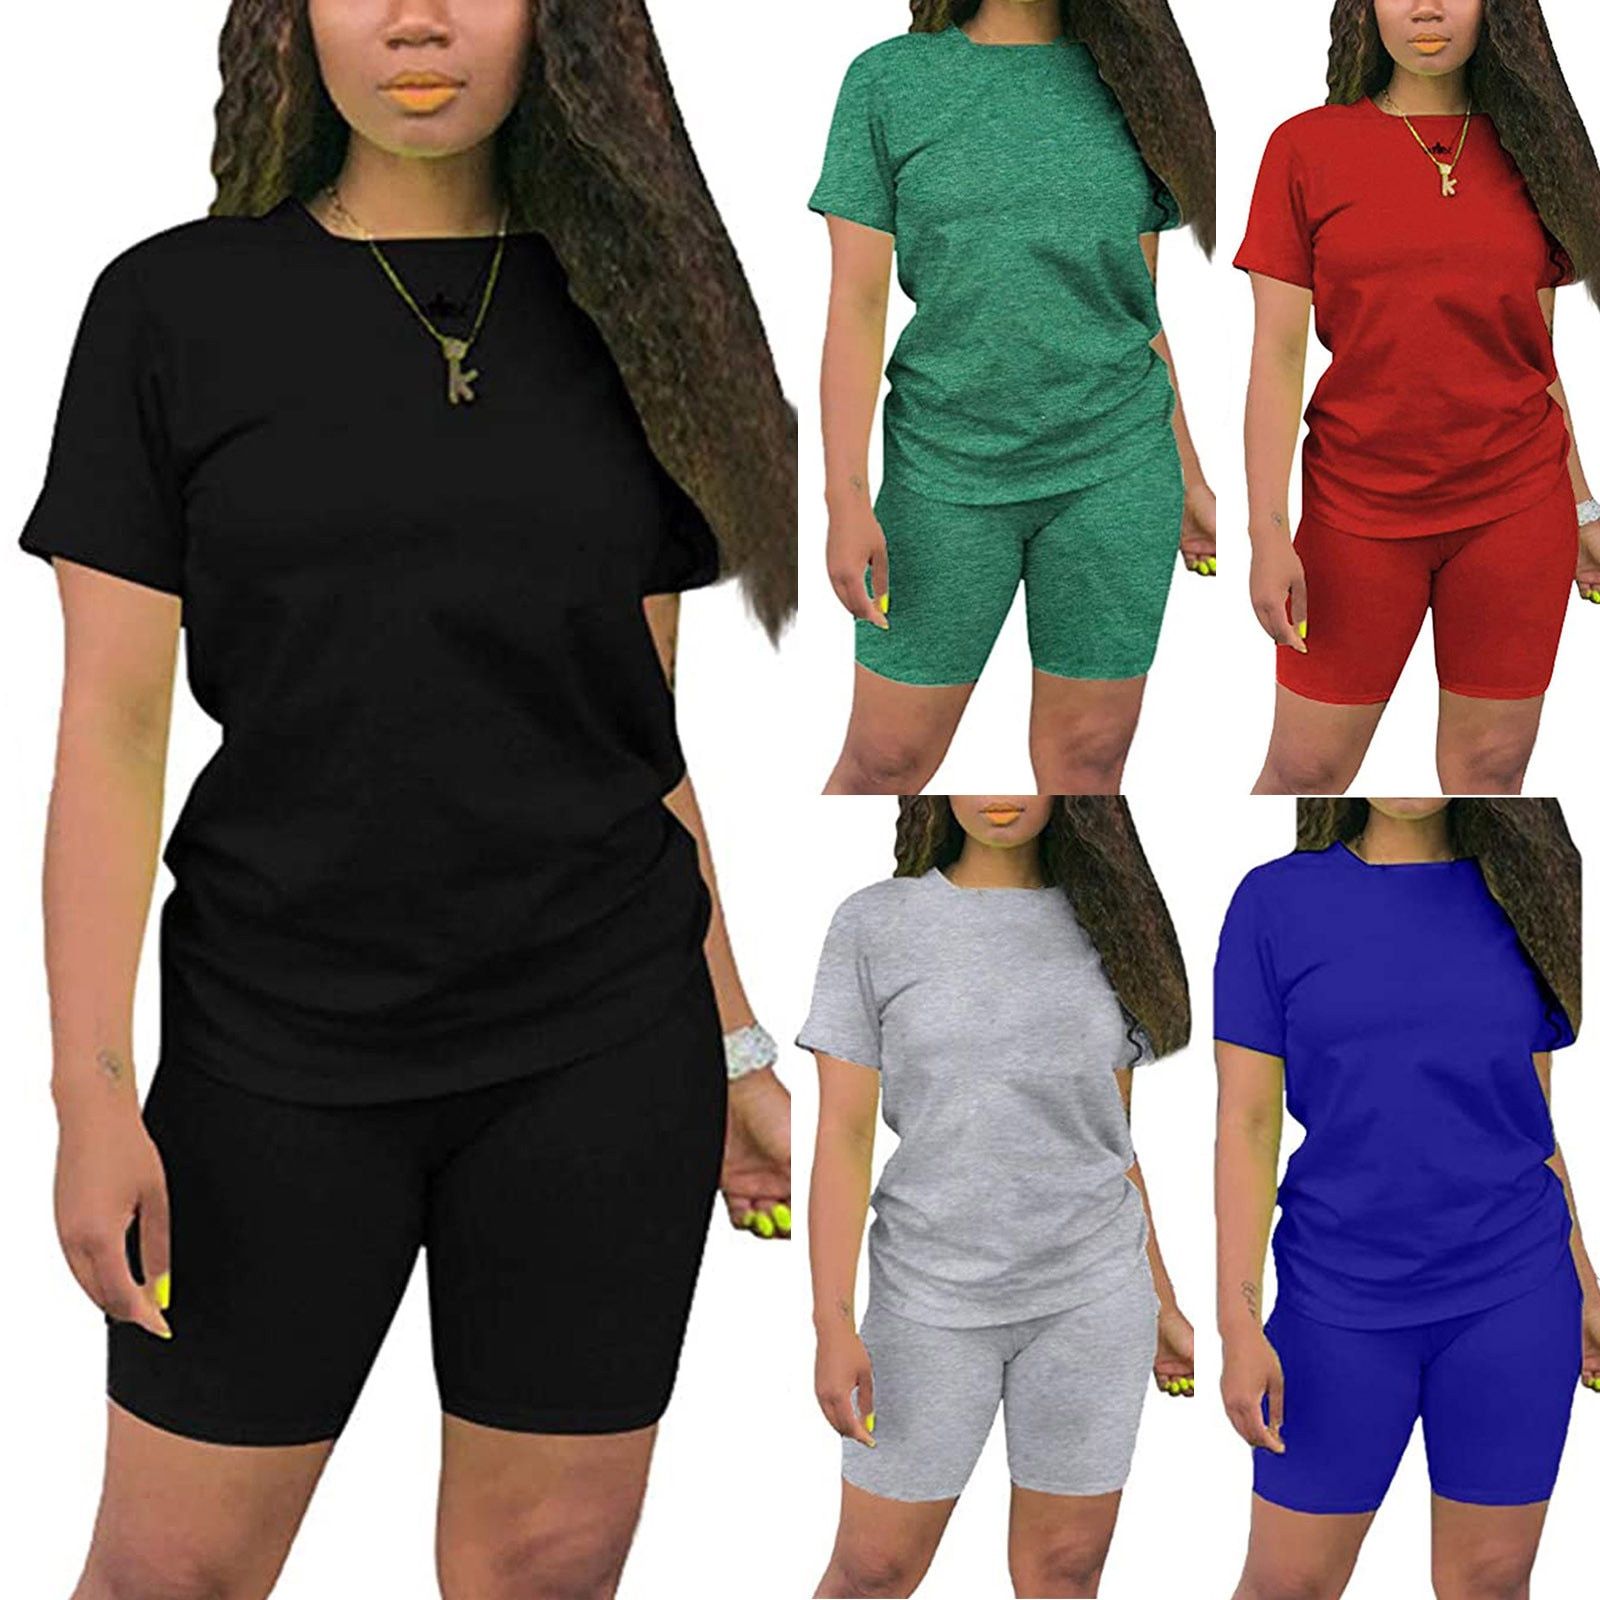 Women Casual Summer Home Pure Colour Short Comfortable Breathable Sleeves Shorts 2 Piece Sports Suit Crew Neck T-shirt Simple